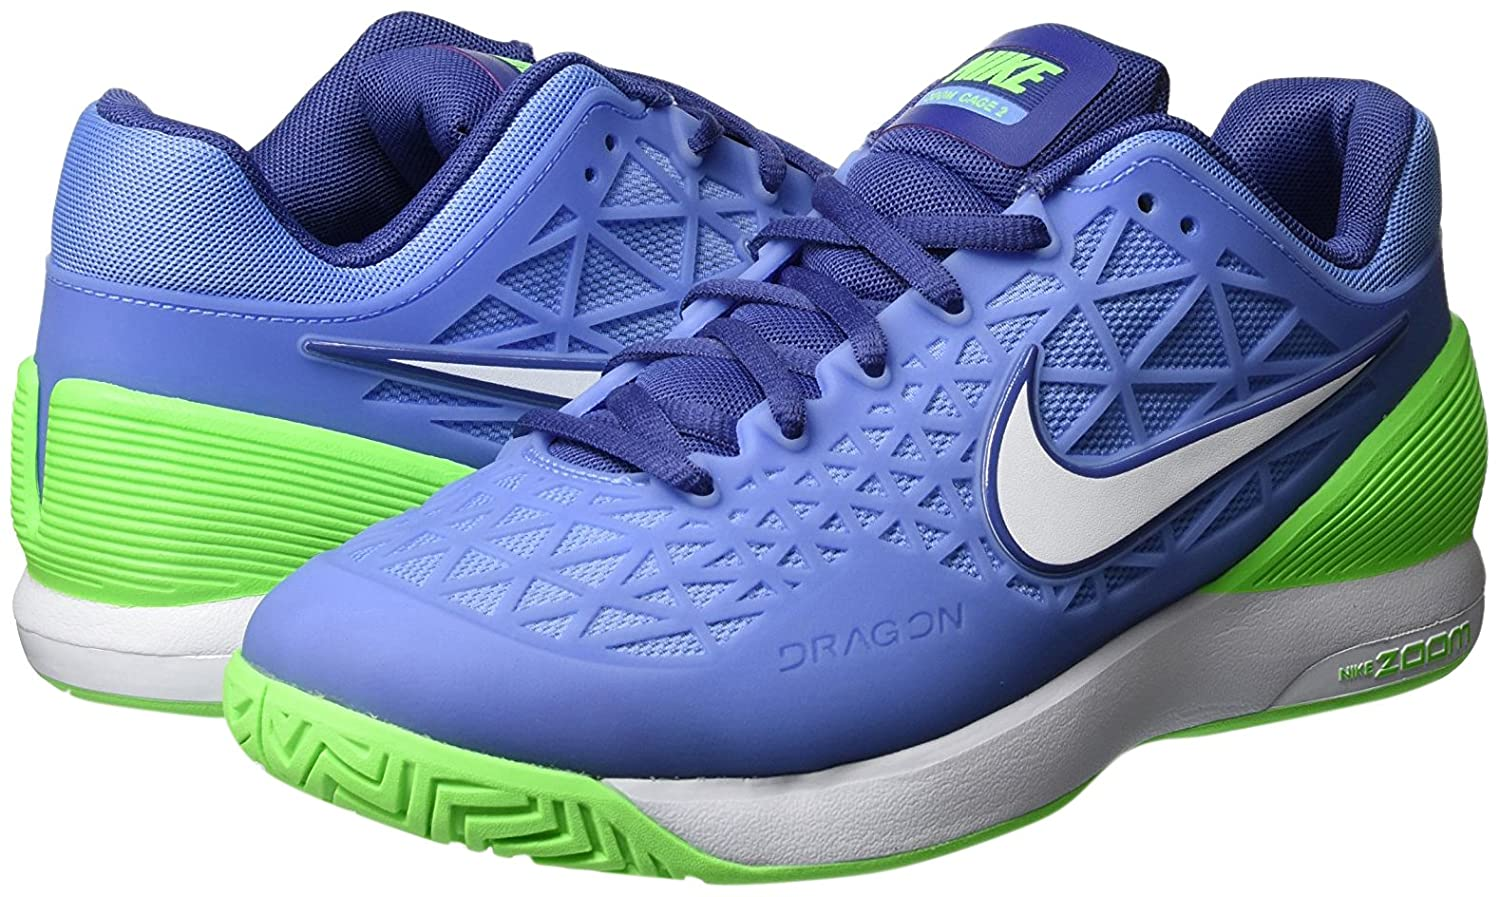 NIKE Women's Zoom Cage 2 Tennis Shoes (Chalk BlueVoltage Green, 7.5)